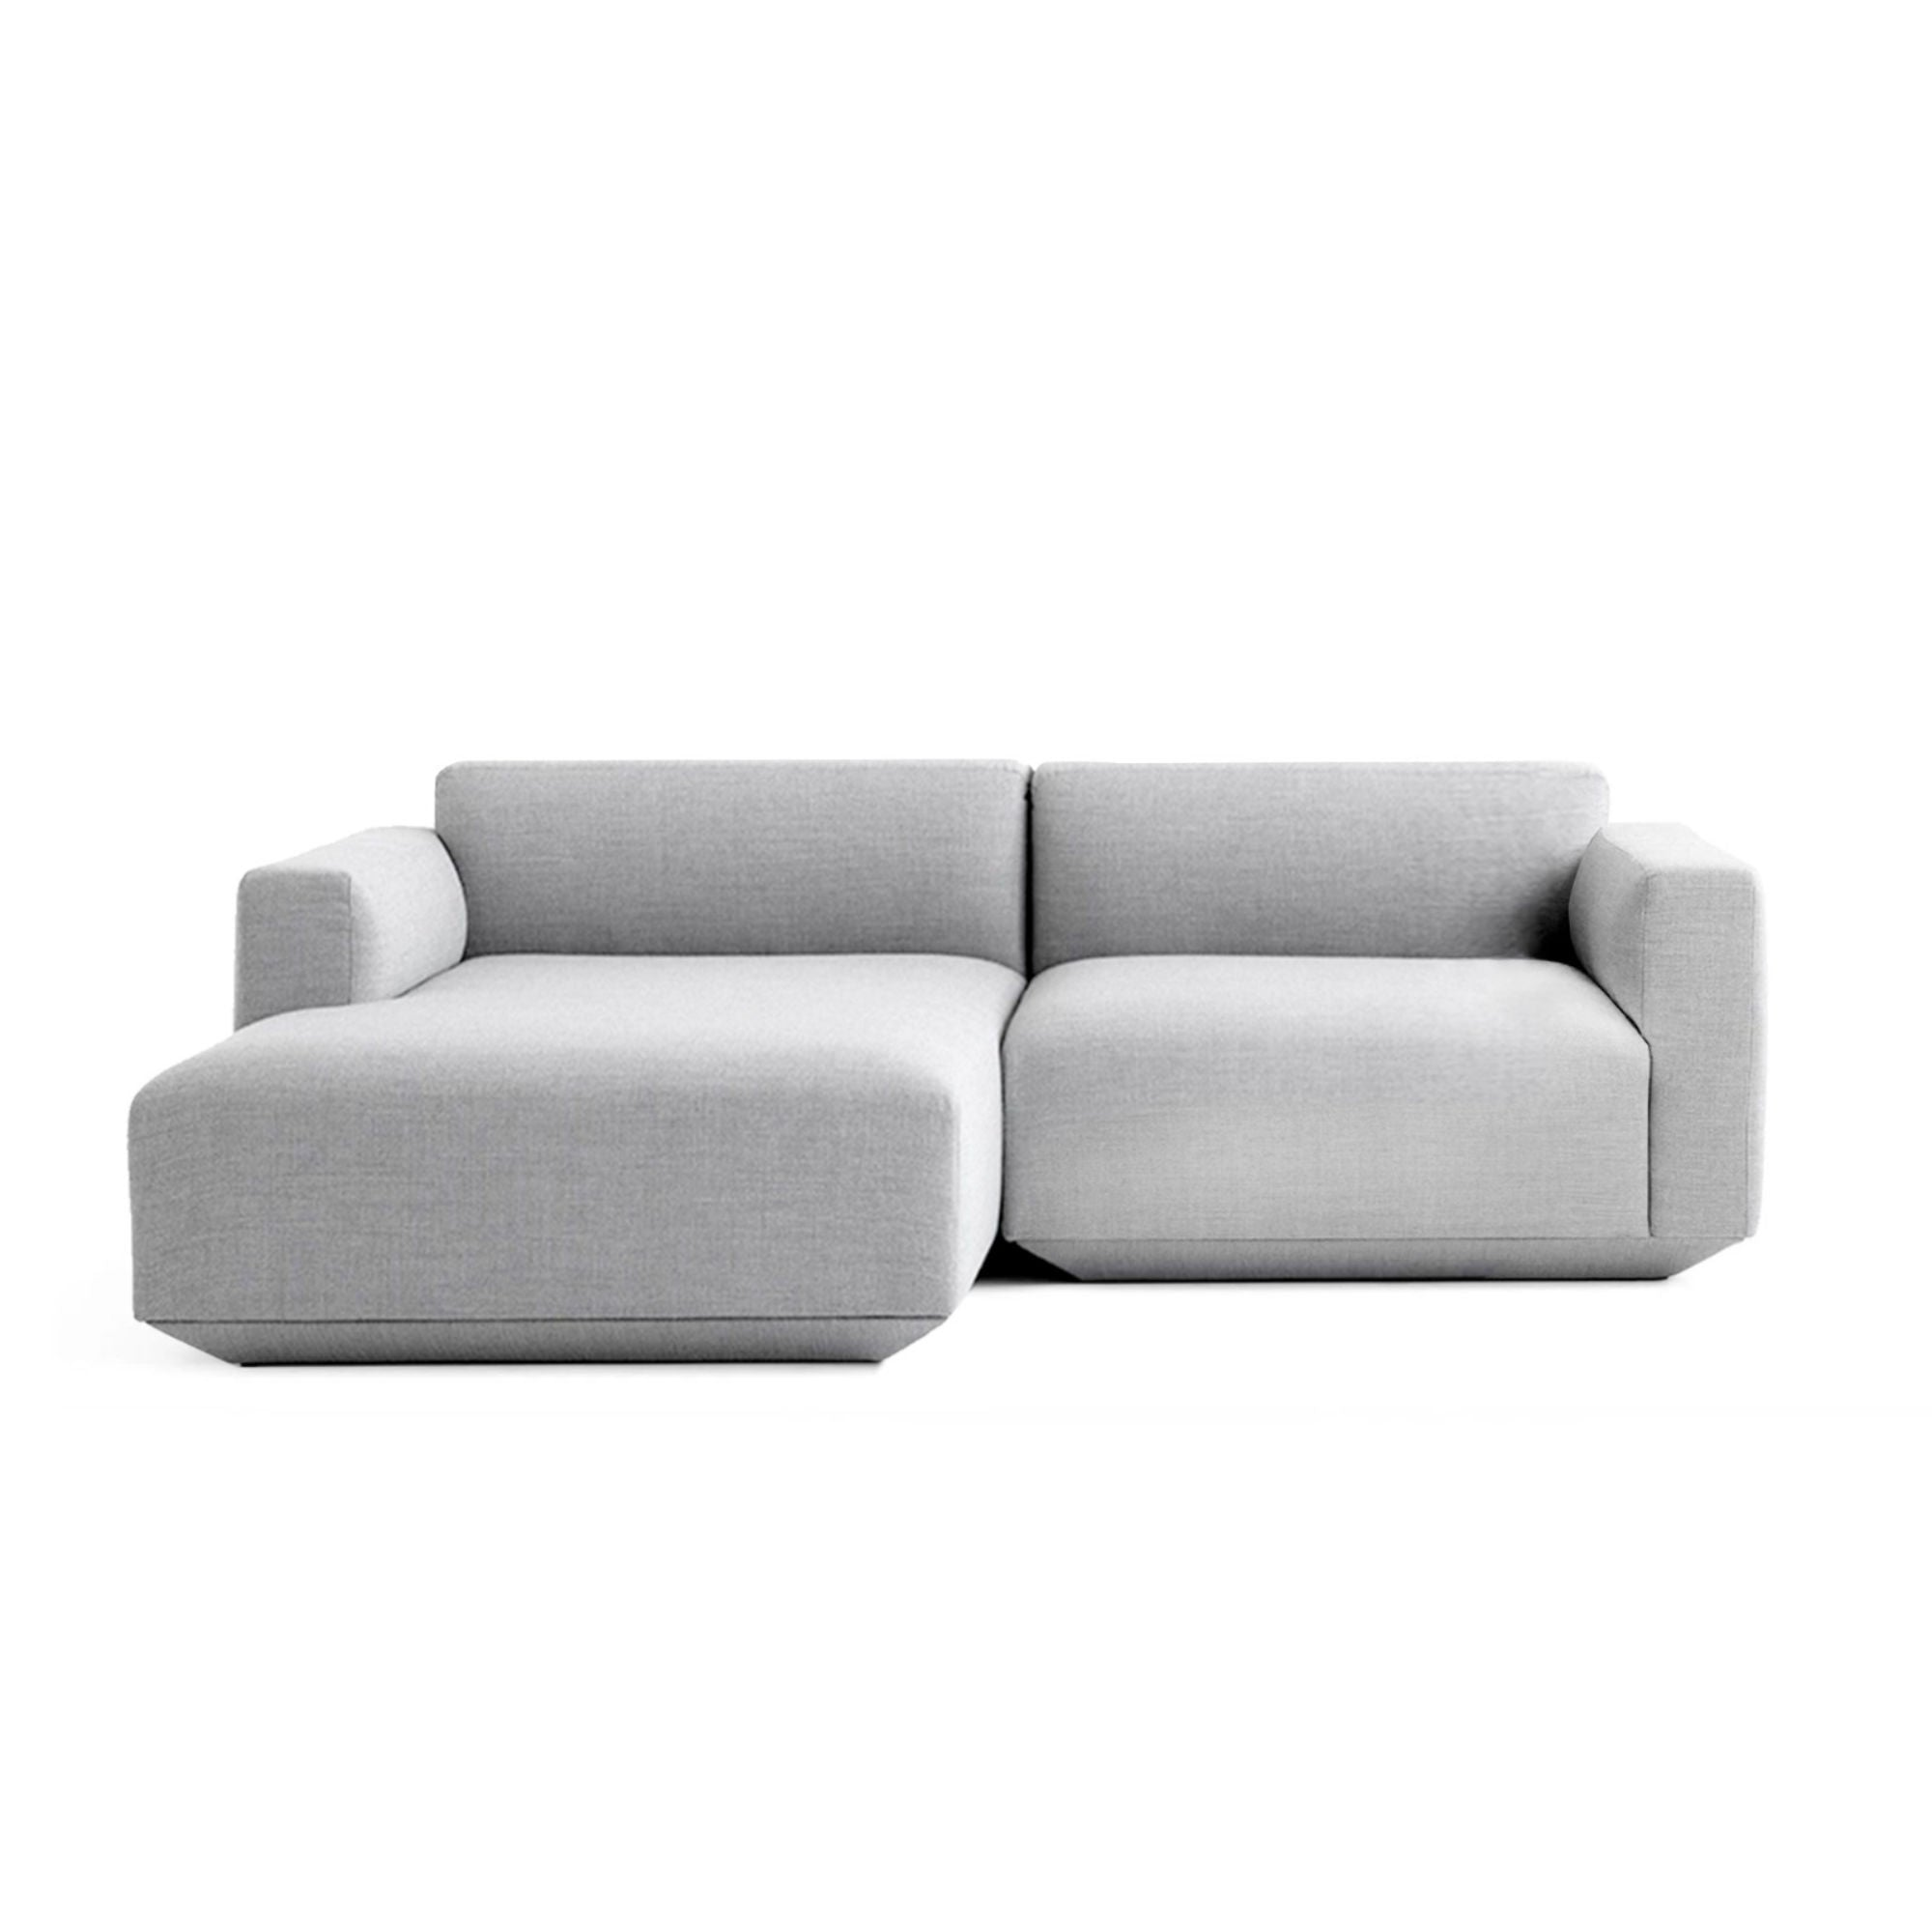 &Tradition Develius Sofa Configuration C , Linara Tweed 443